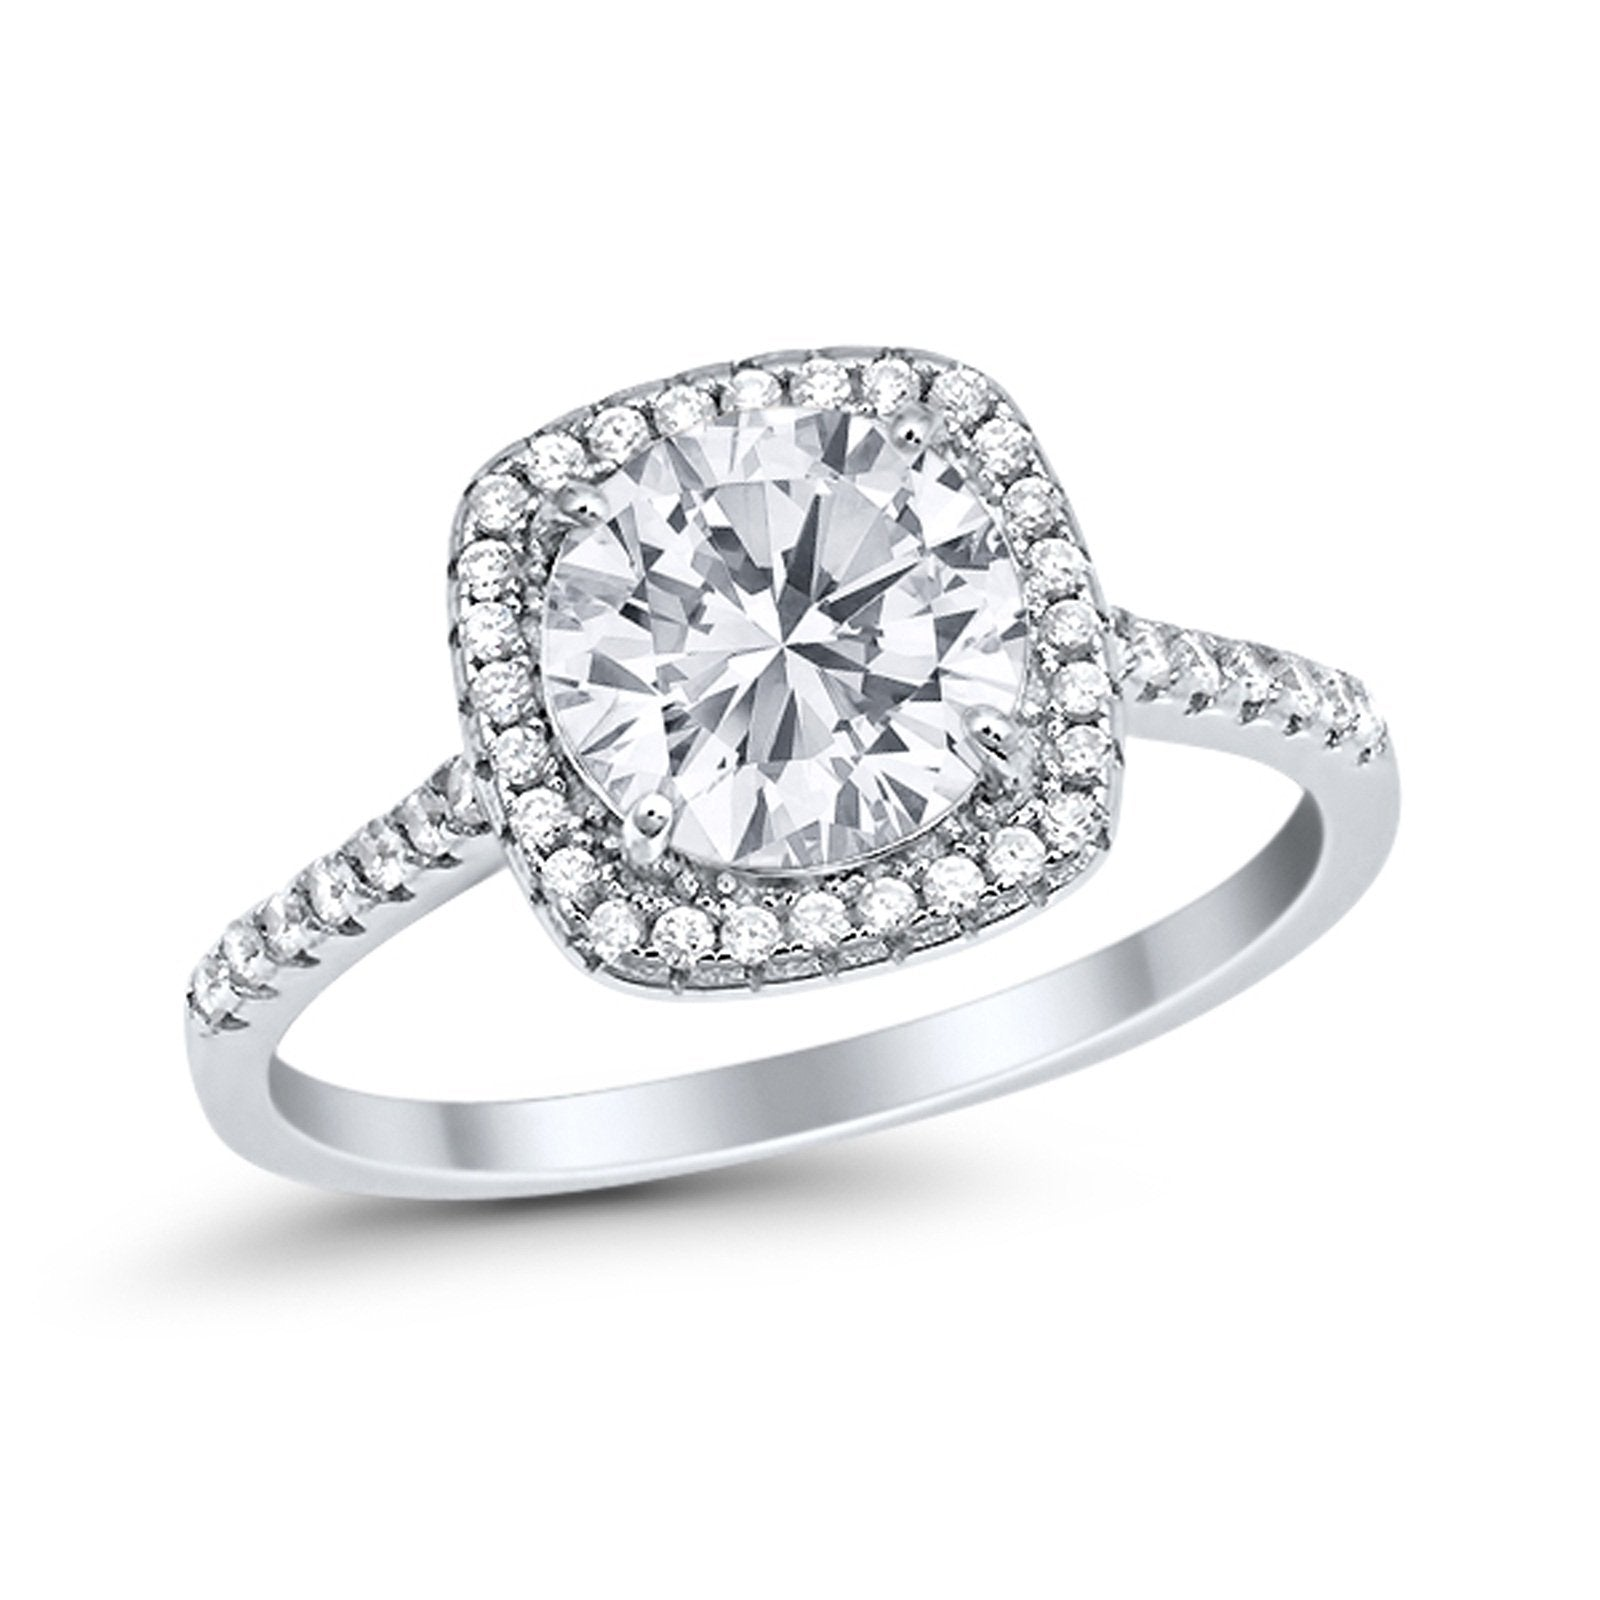 Halo Wedding Engagement Ring Round Simulated Cubic Zirconia 925 Sterling Silver